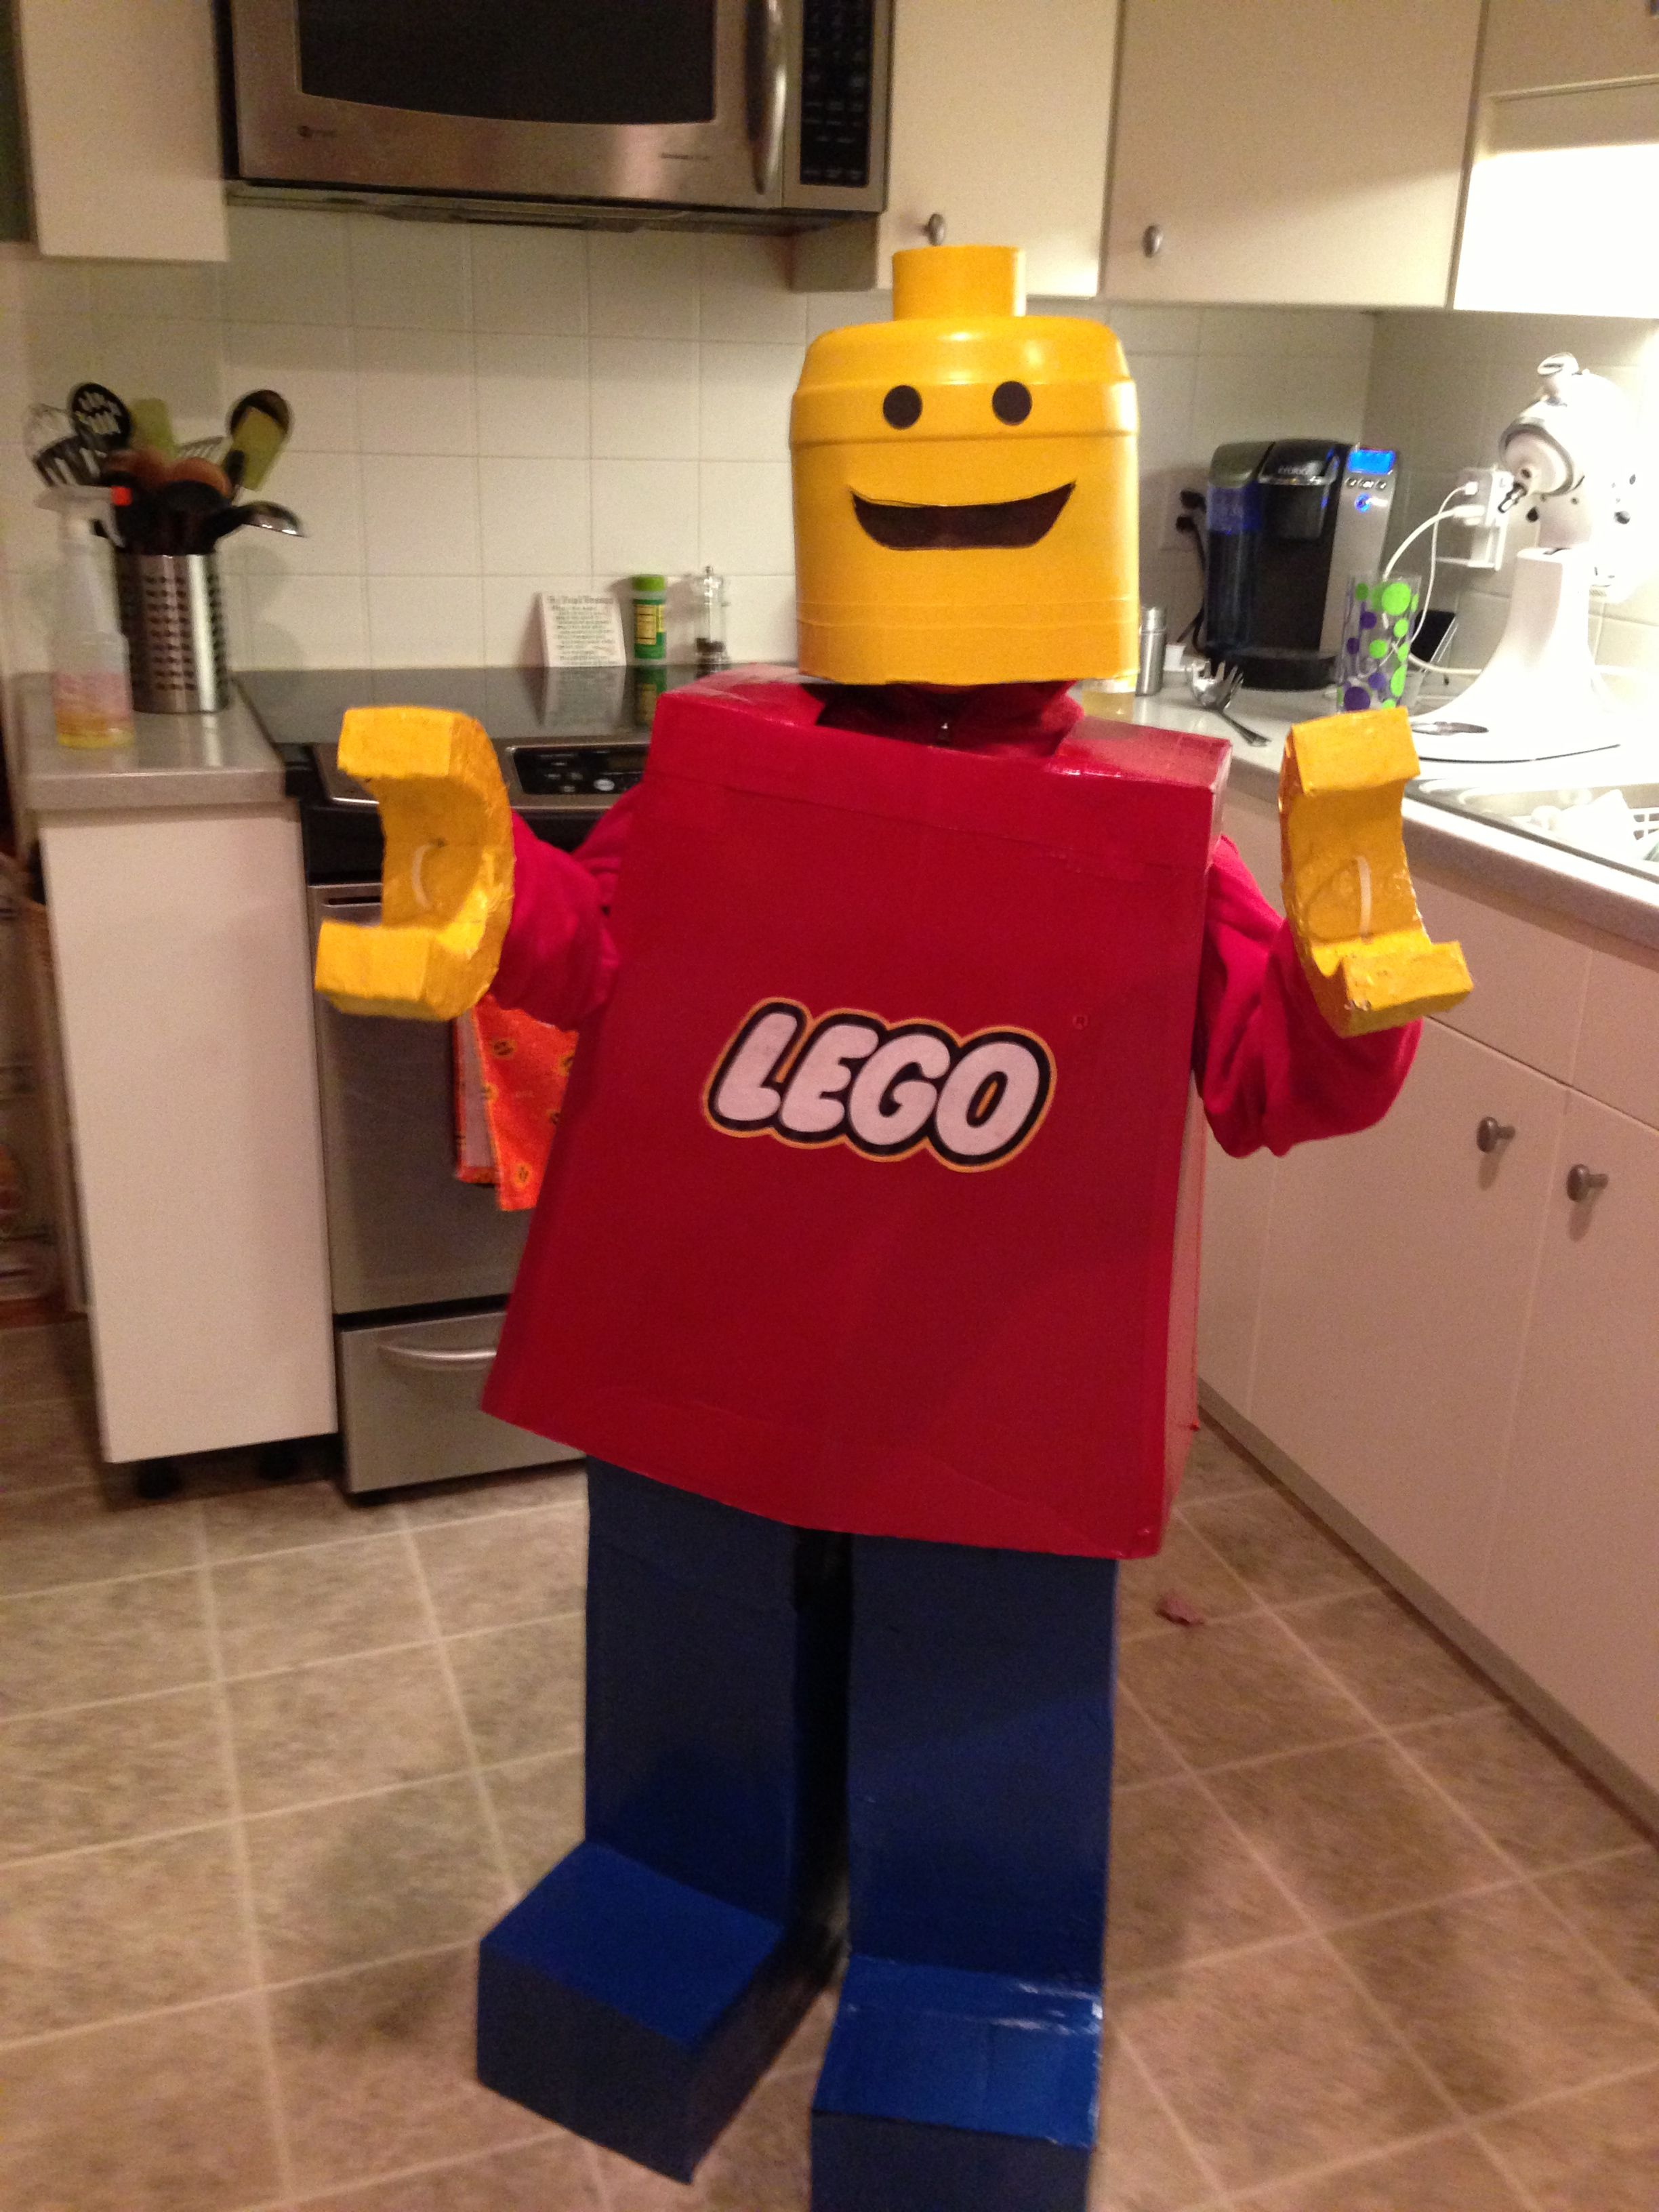 Lego Man Halloween Costume.Lego Man Halloween Costume Aimee Whorms For Mother Of The